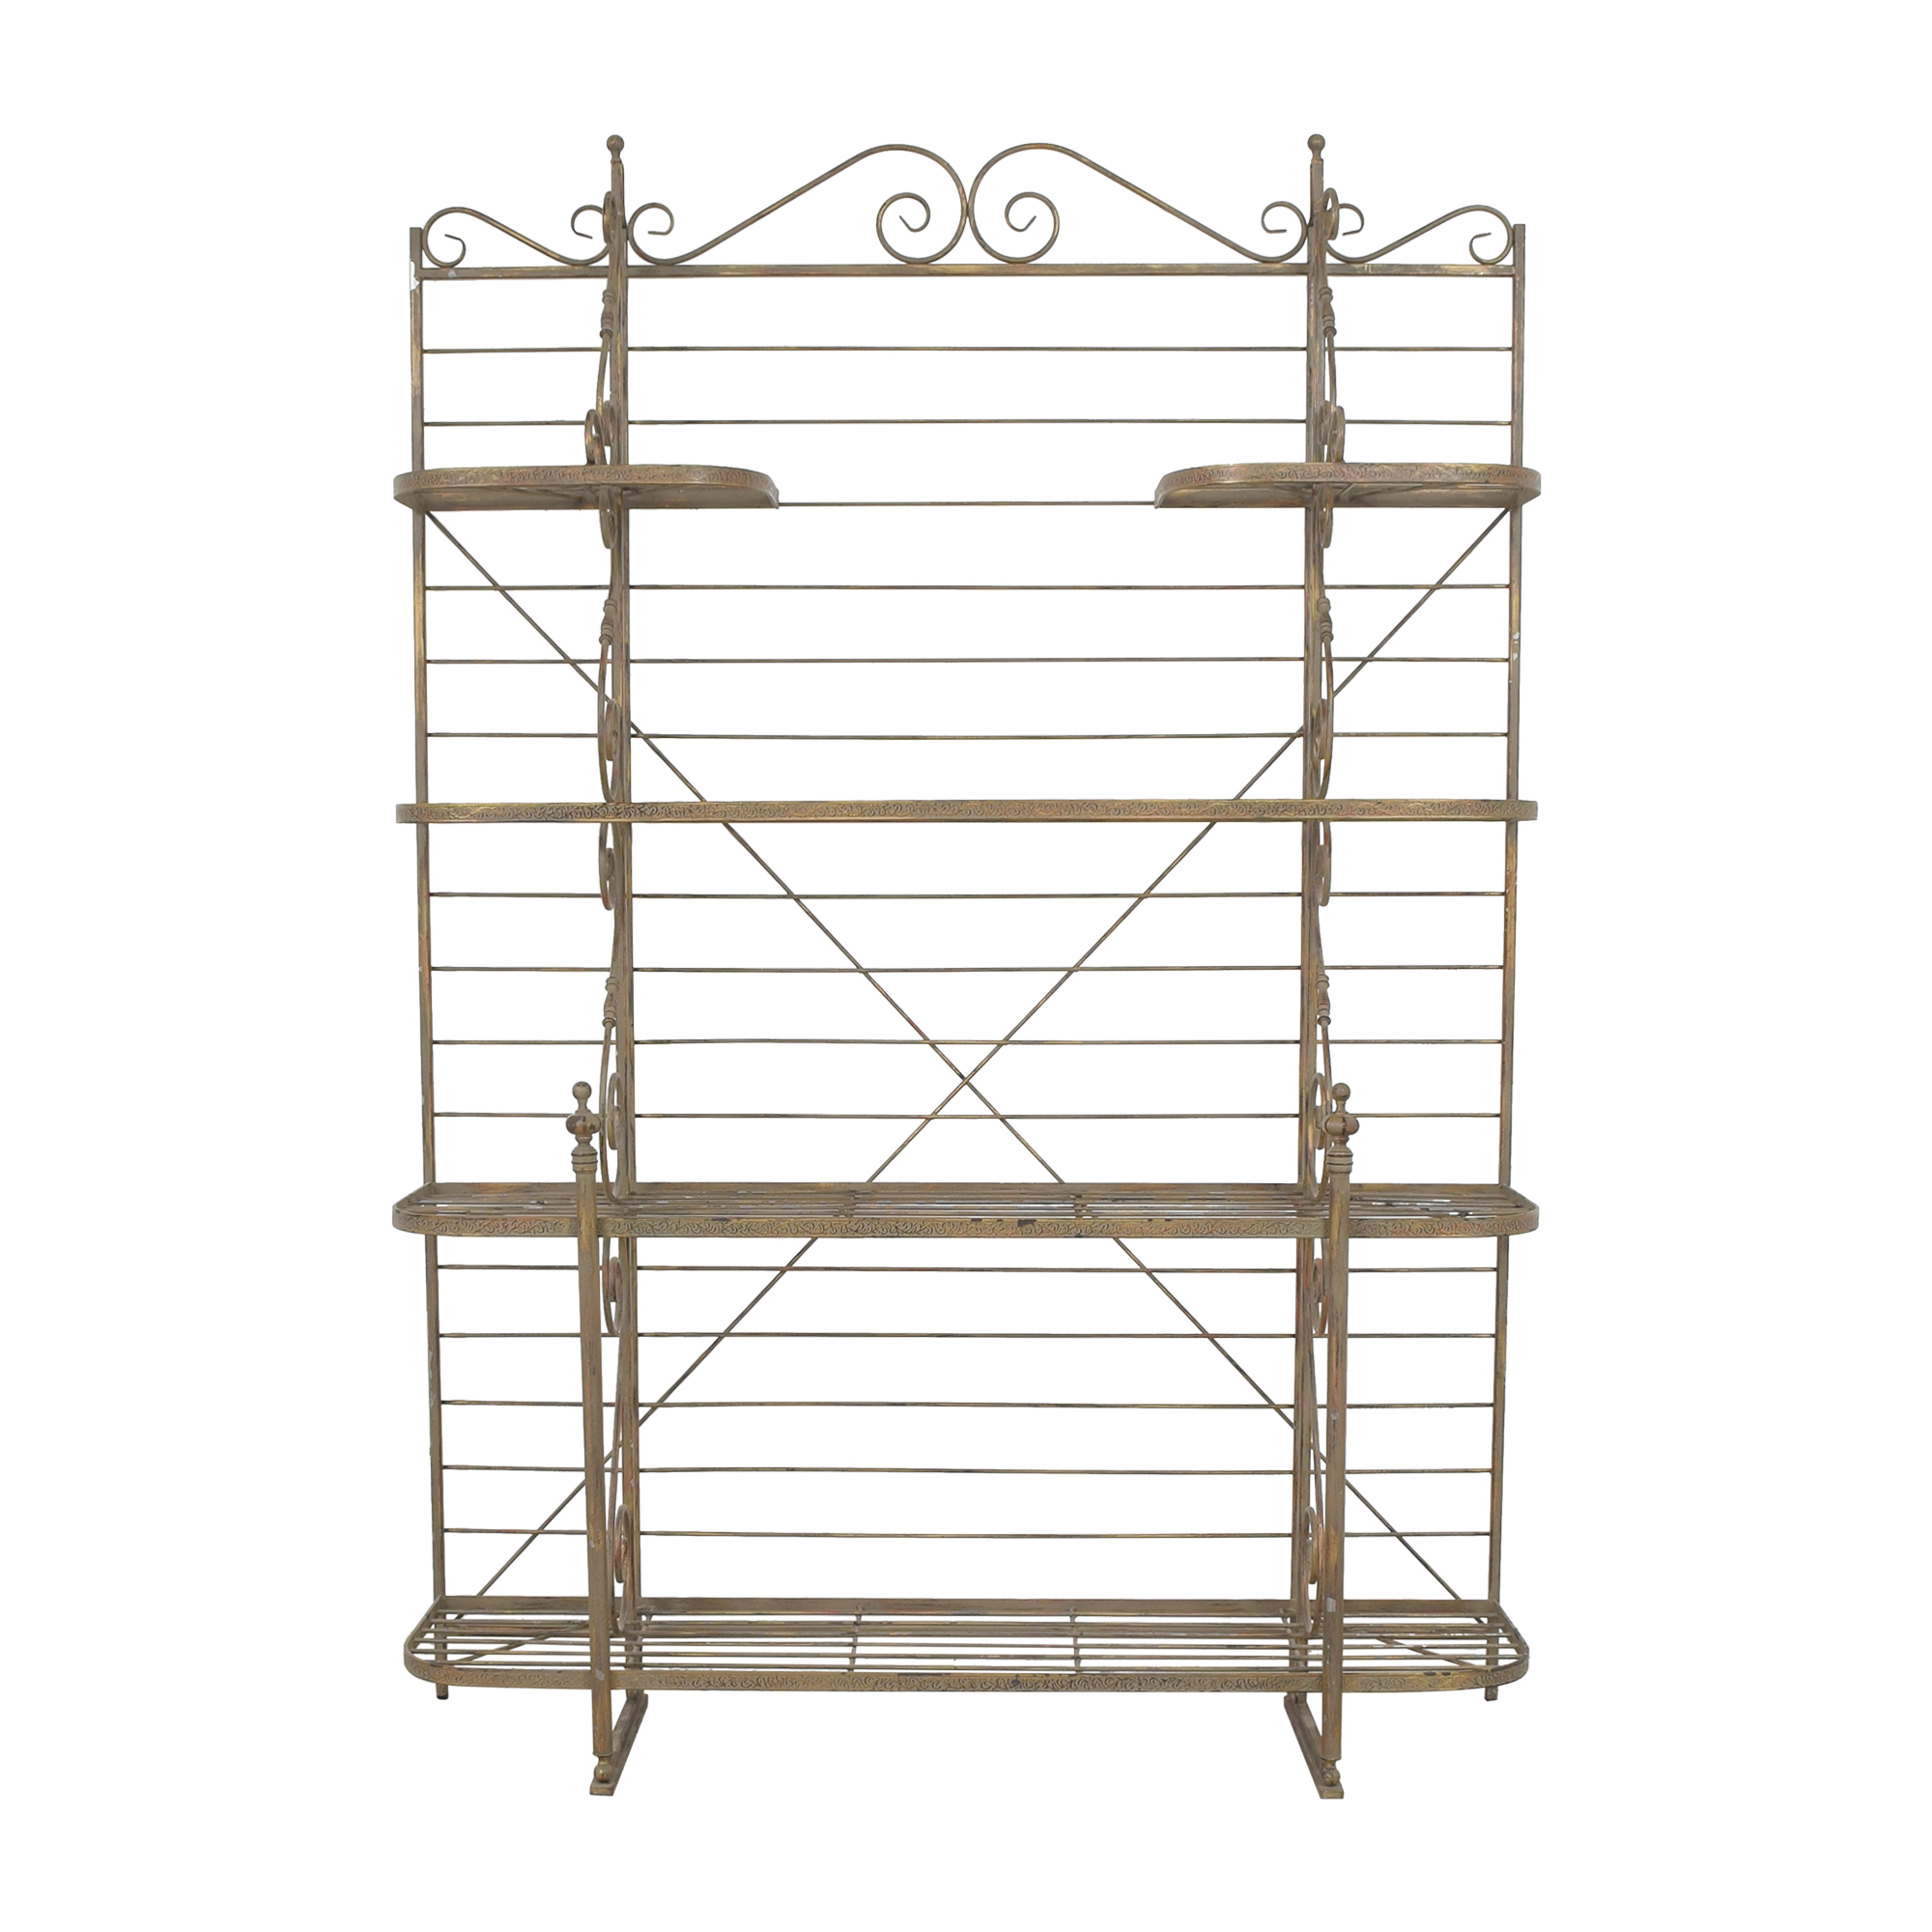 shop Grange Baker's Rack Grange Bookcases & Shelving